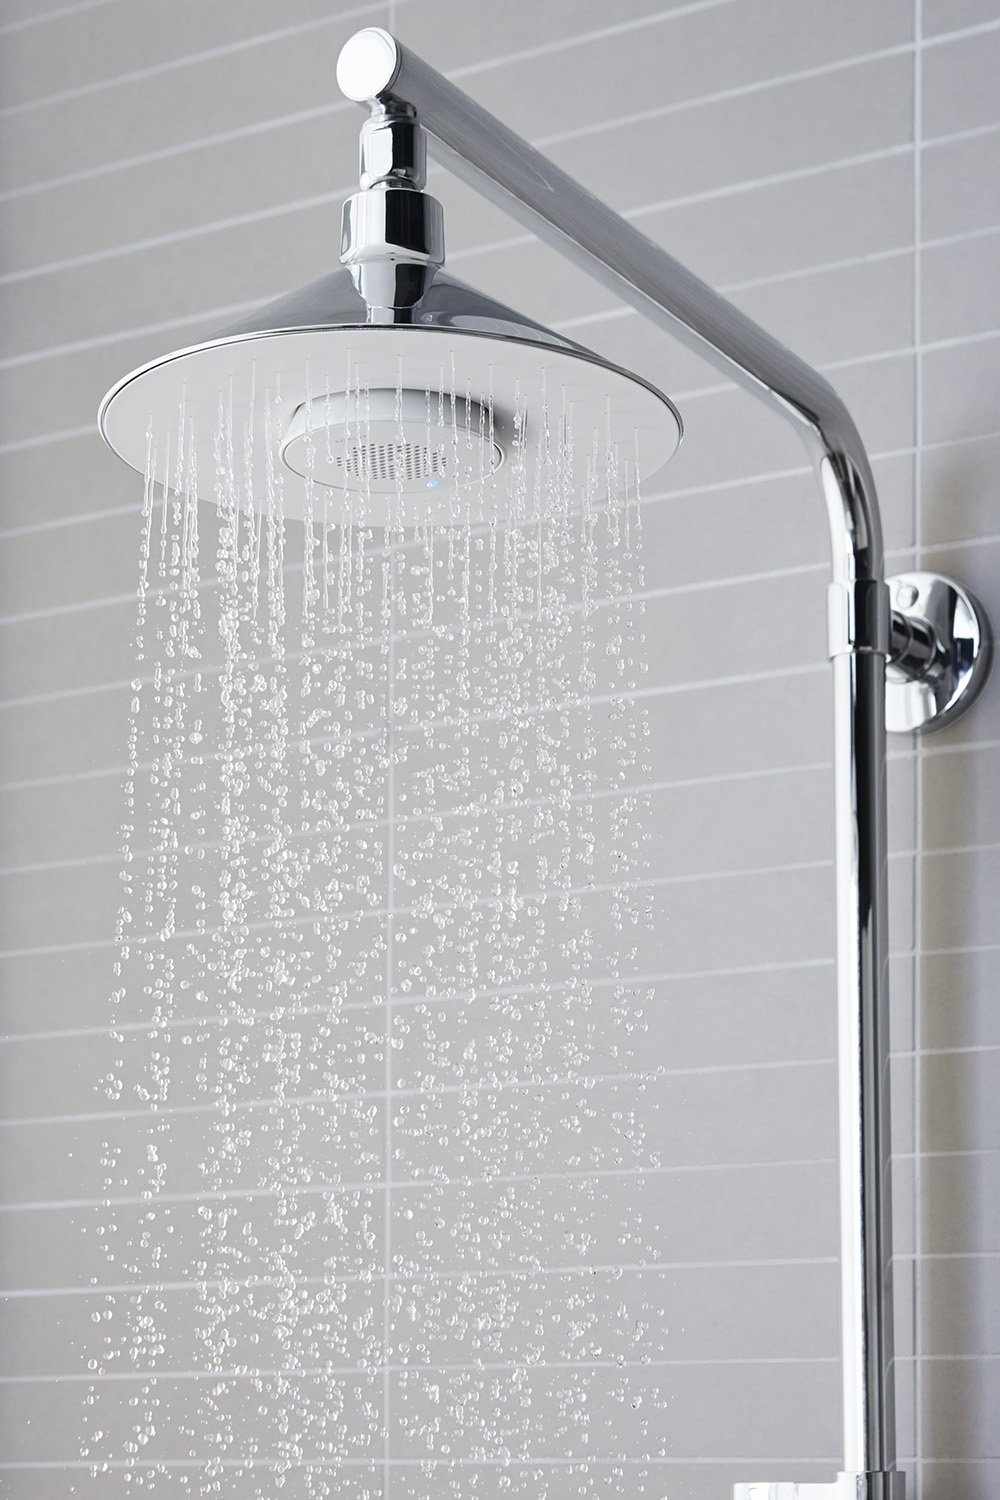 KOHLER K-99105-CP MOXIE 2.5 GPM Rainhead with Wireless Speaker ...